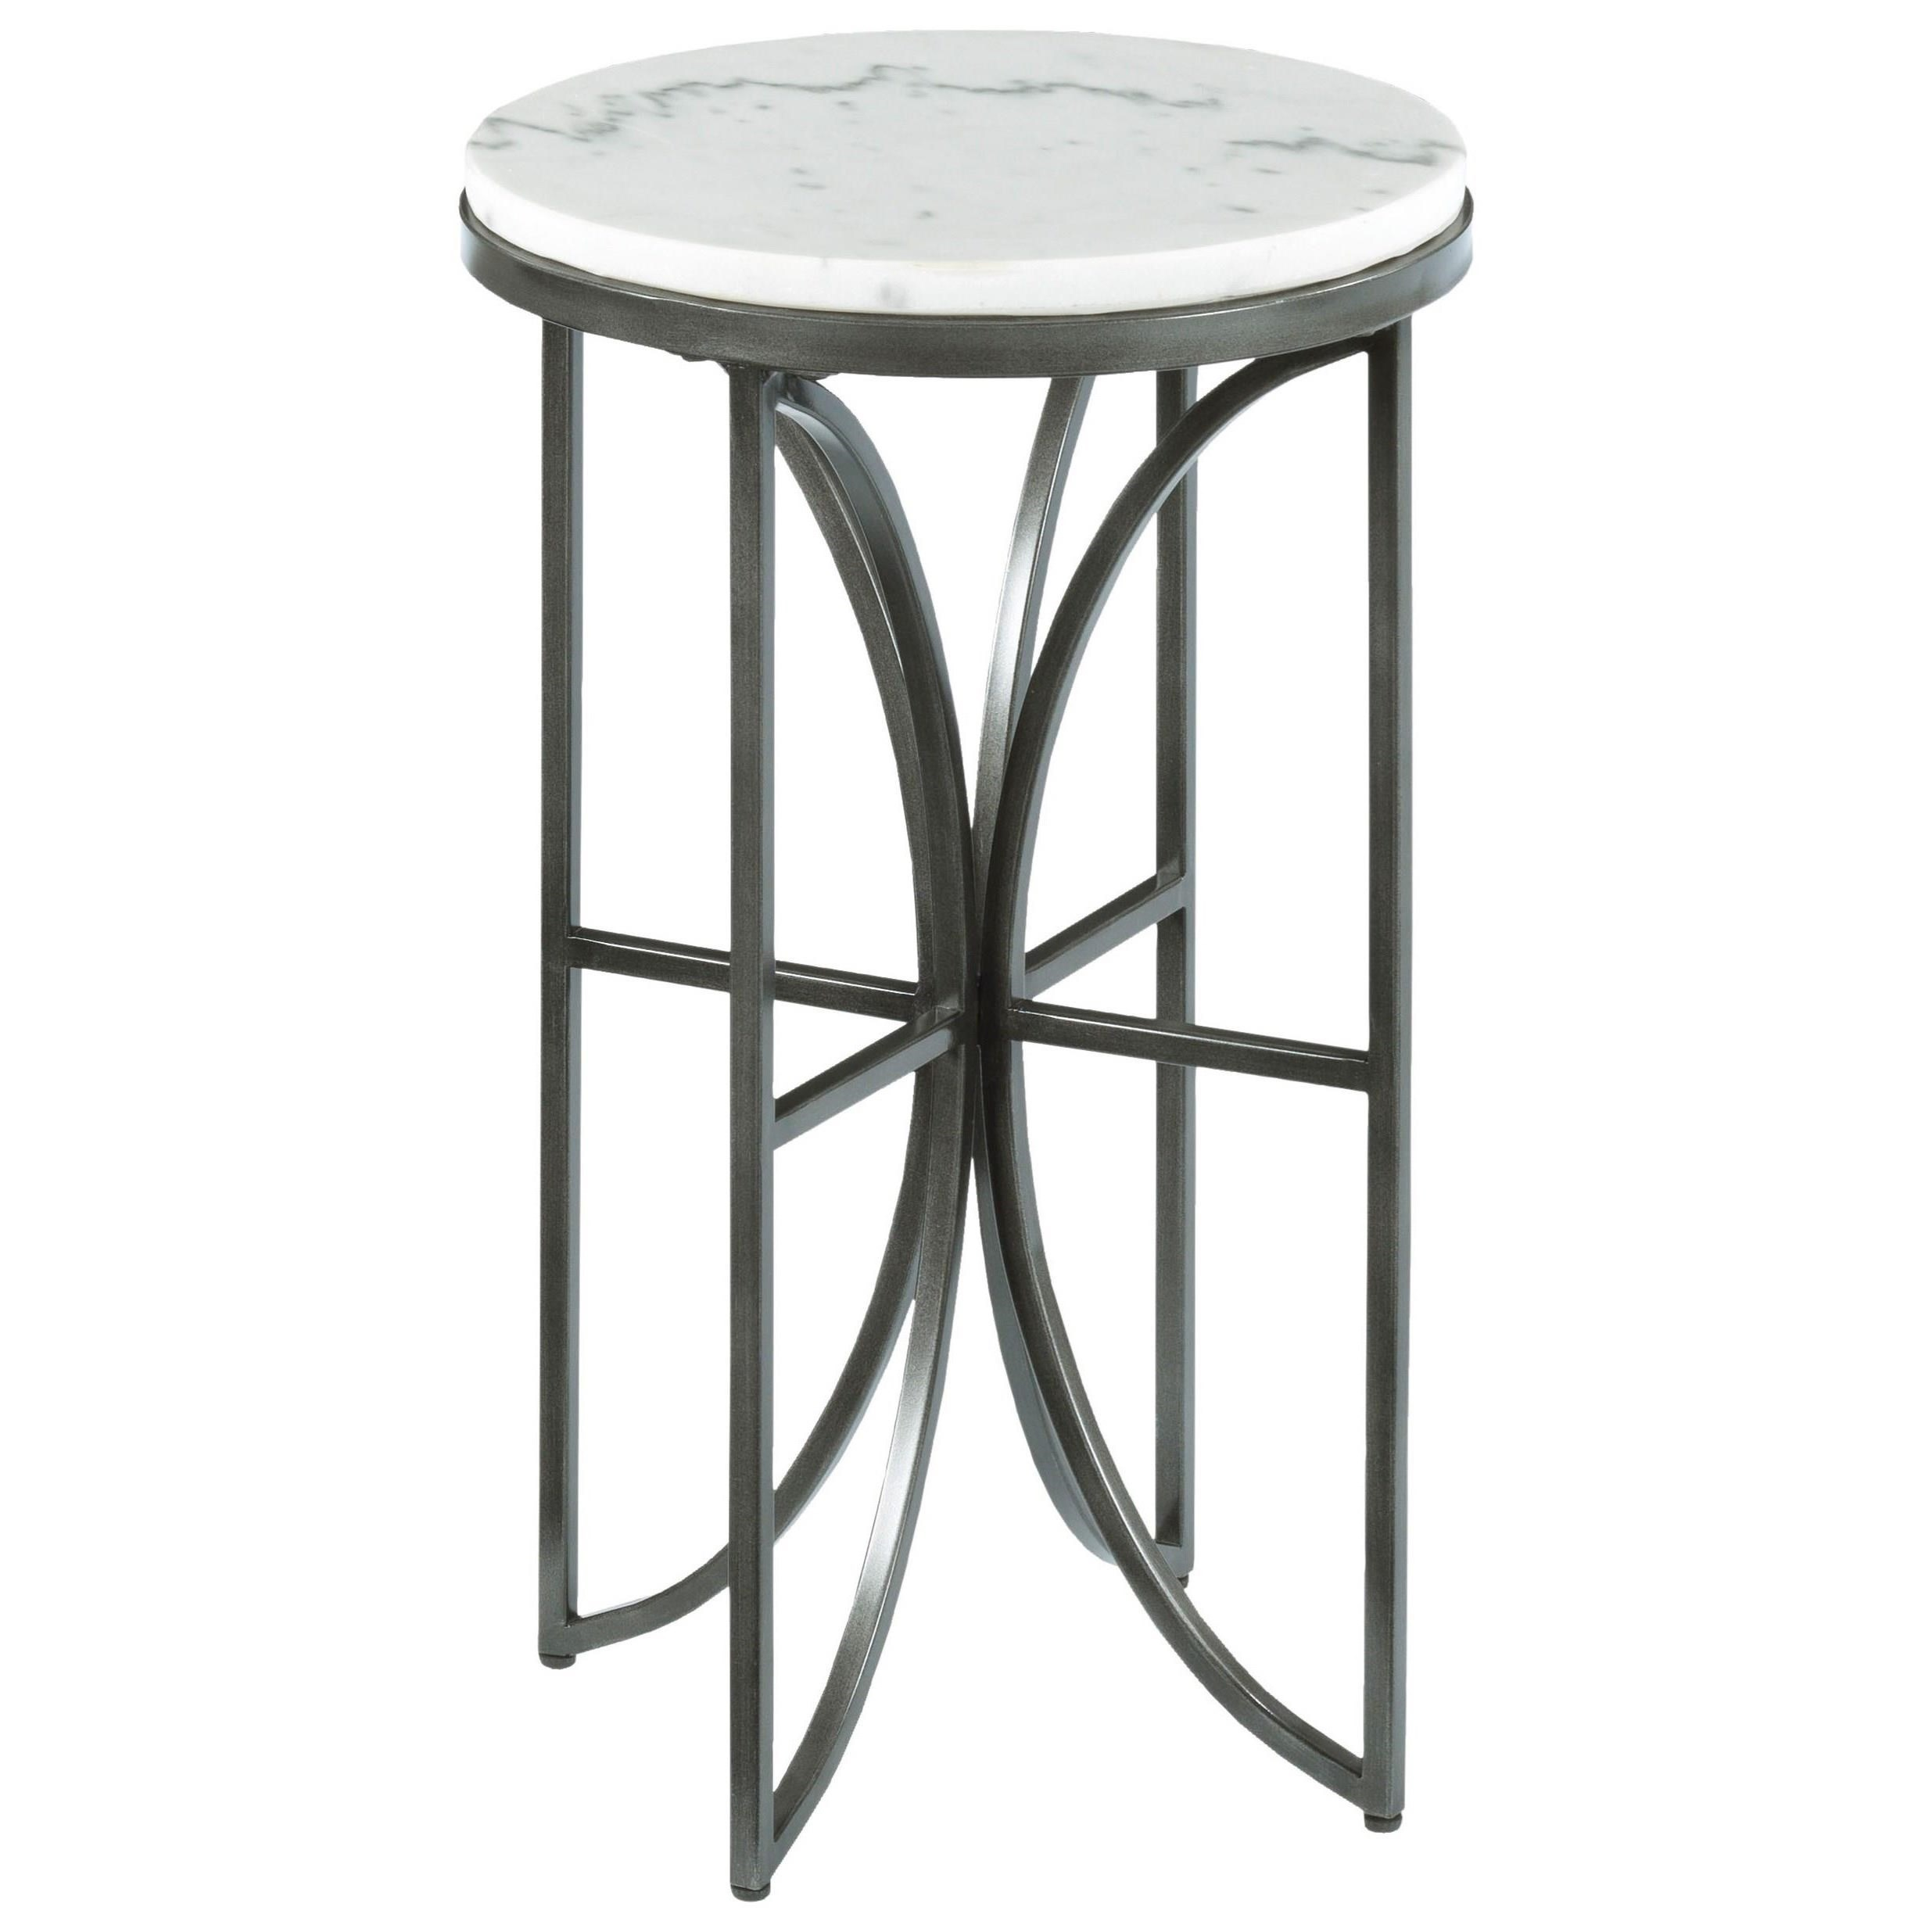 Small round accent table